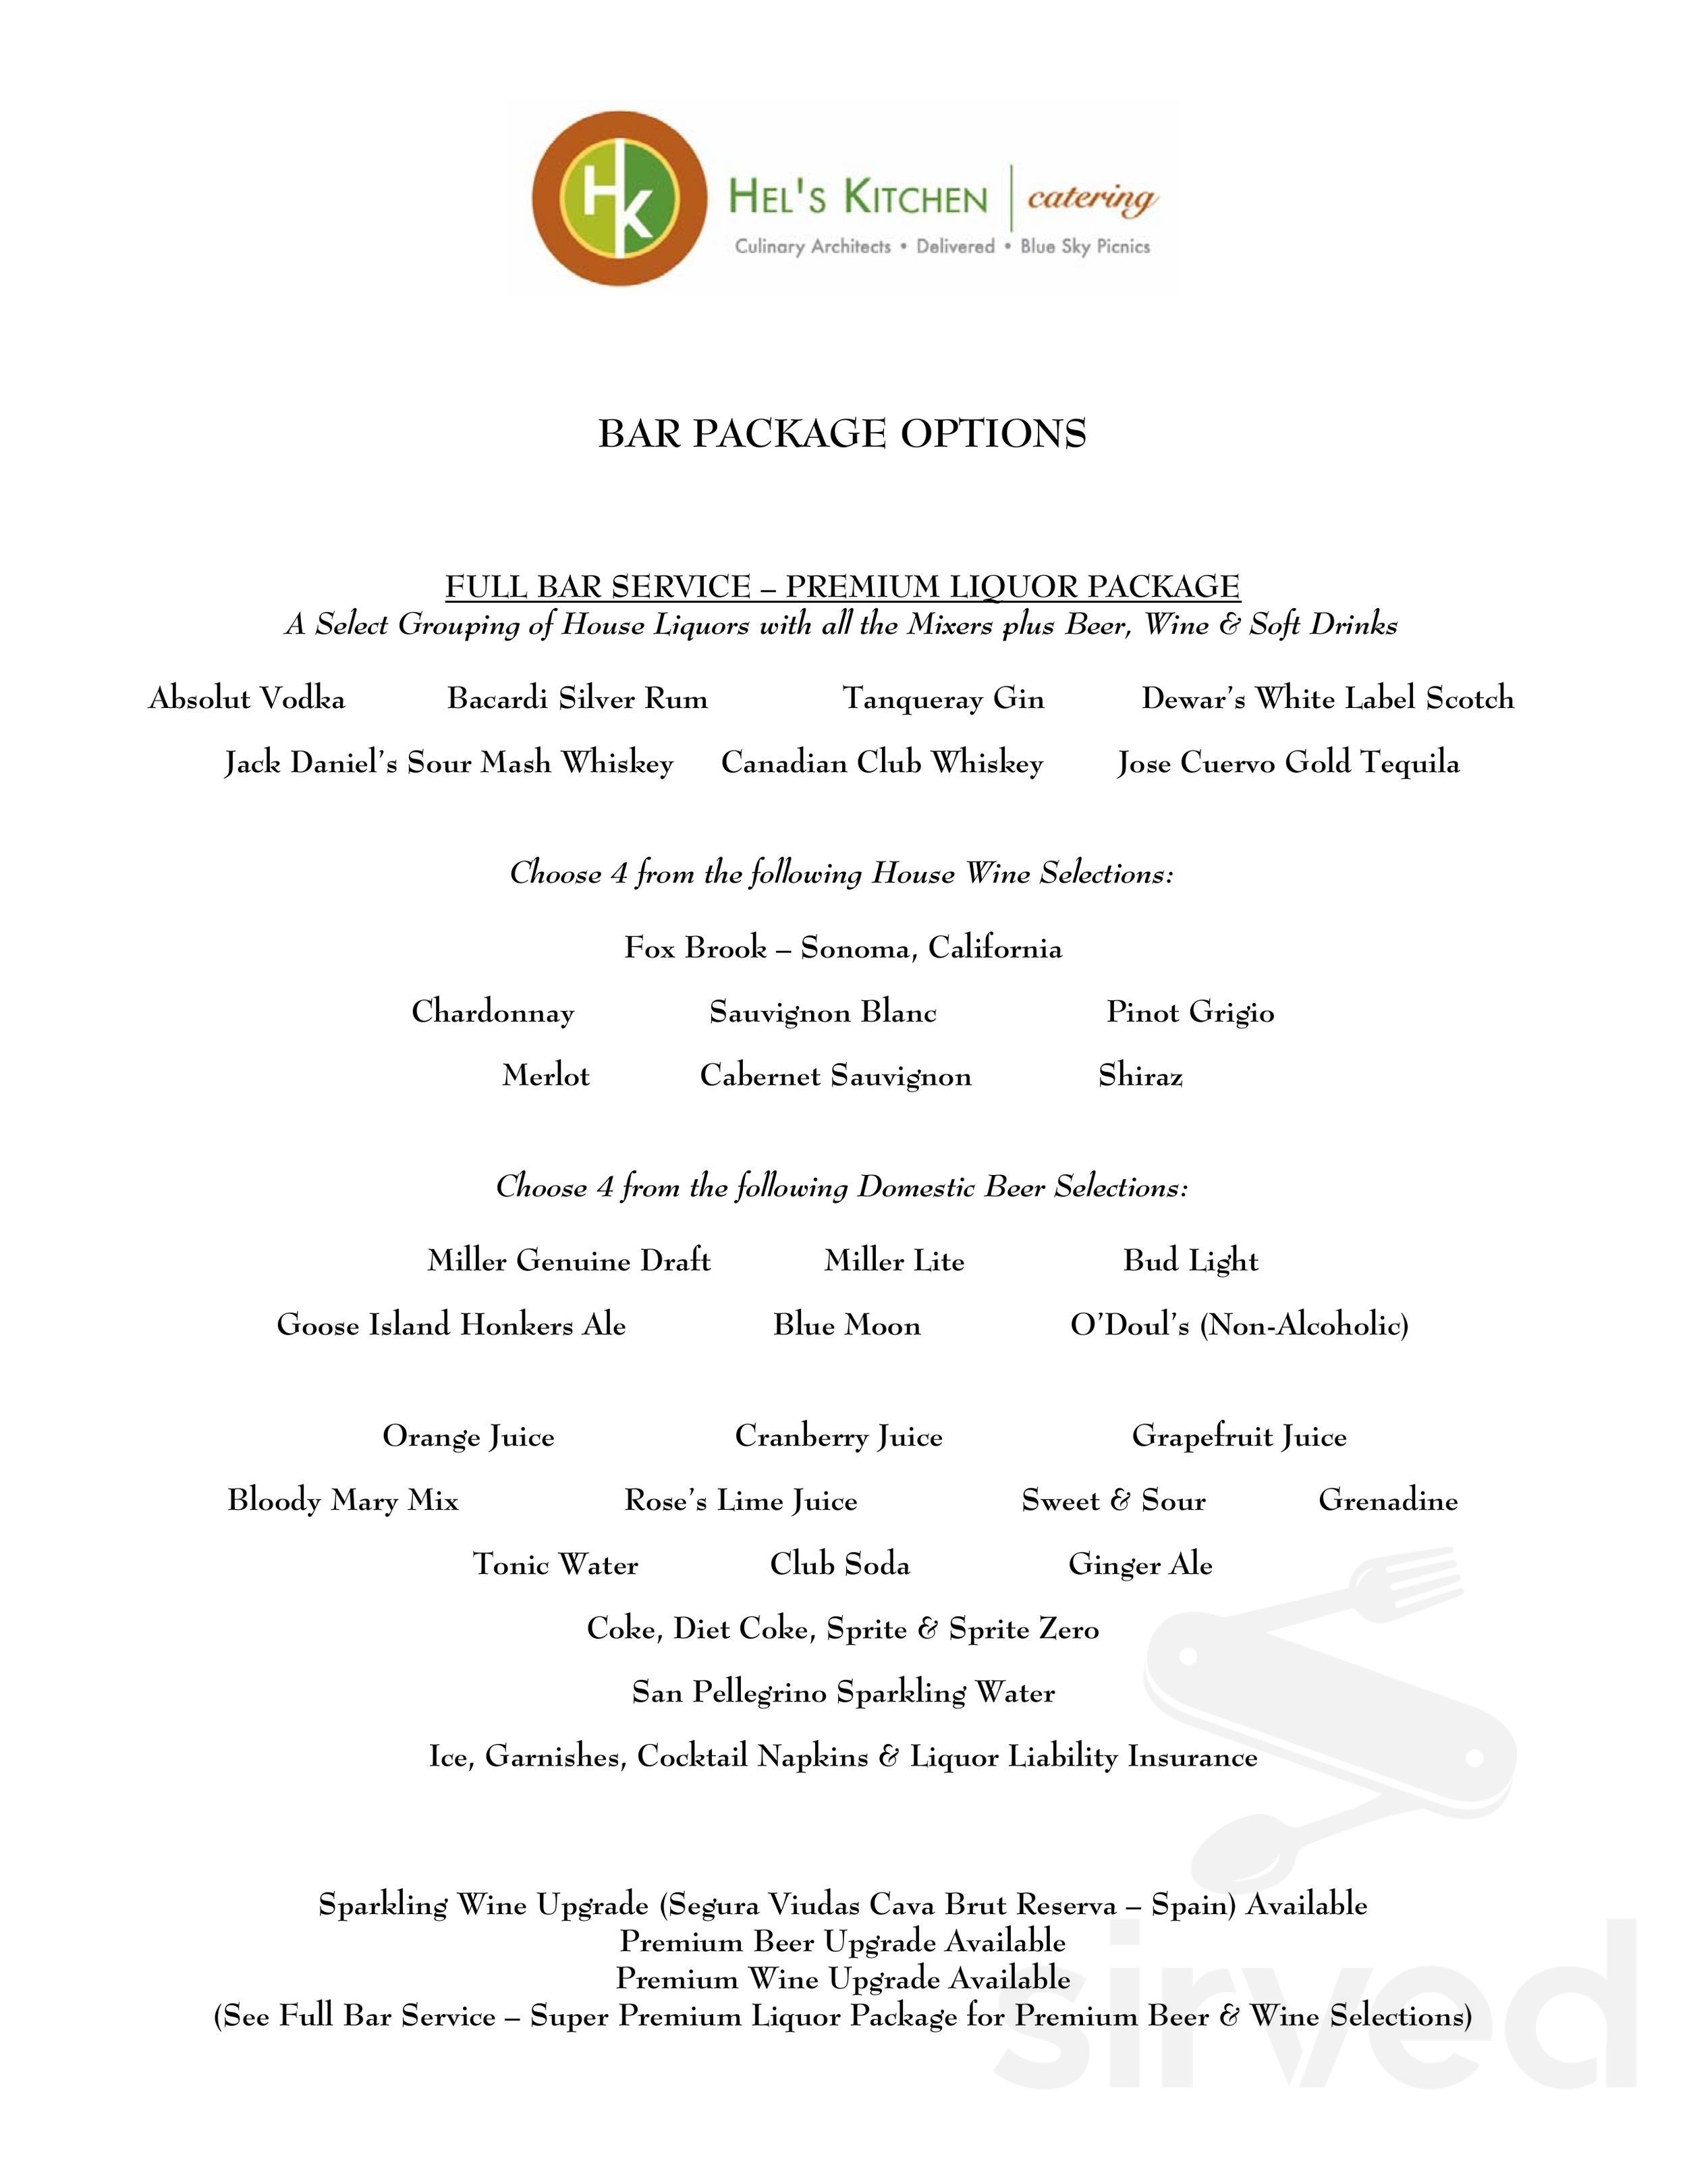 Menu For Hels Kitchen In Highland Park Illinois Usa